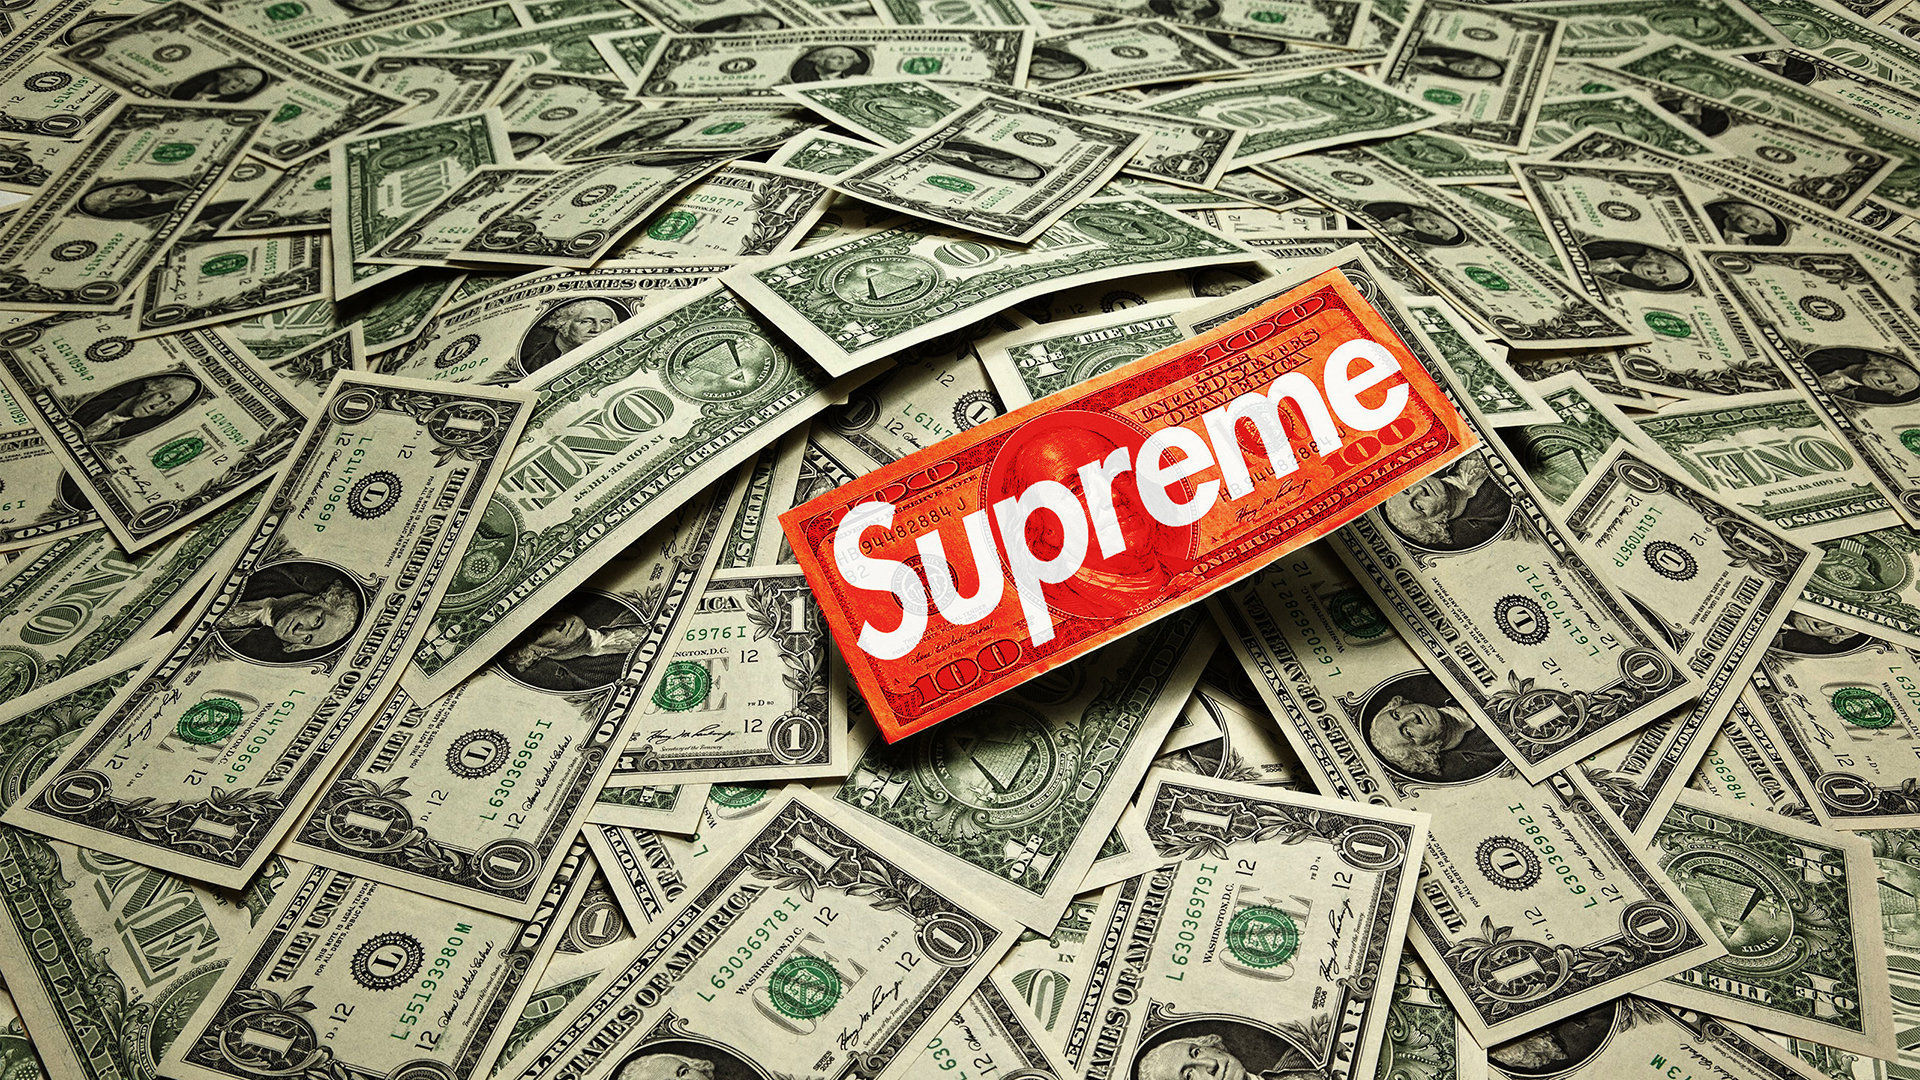 Supreme wallpapers for pc background